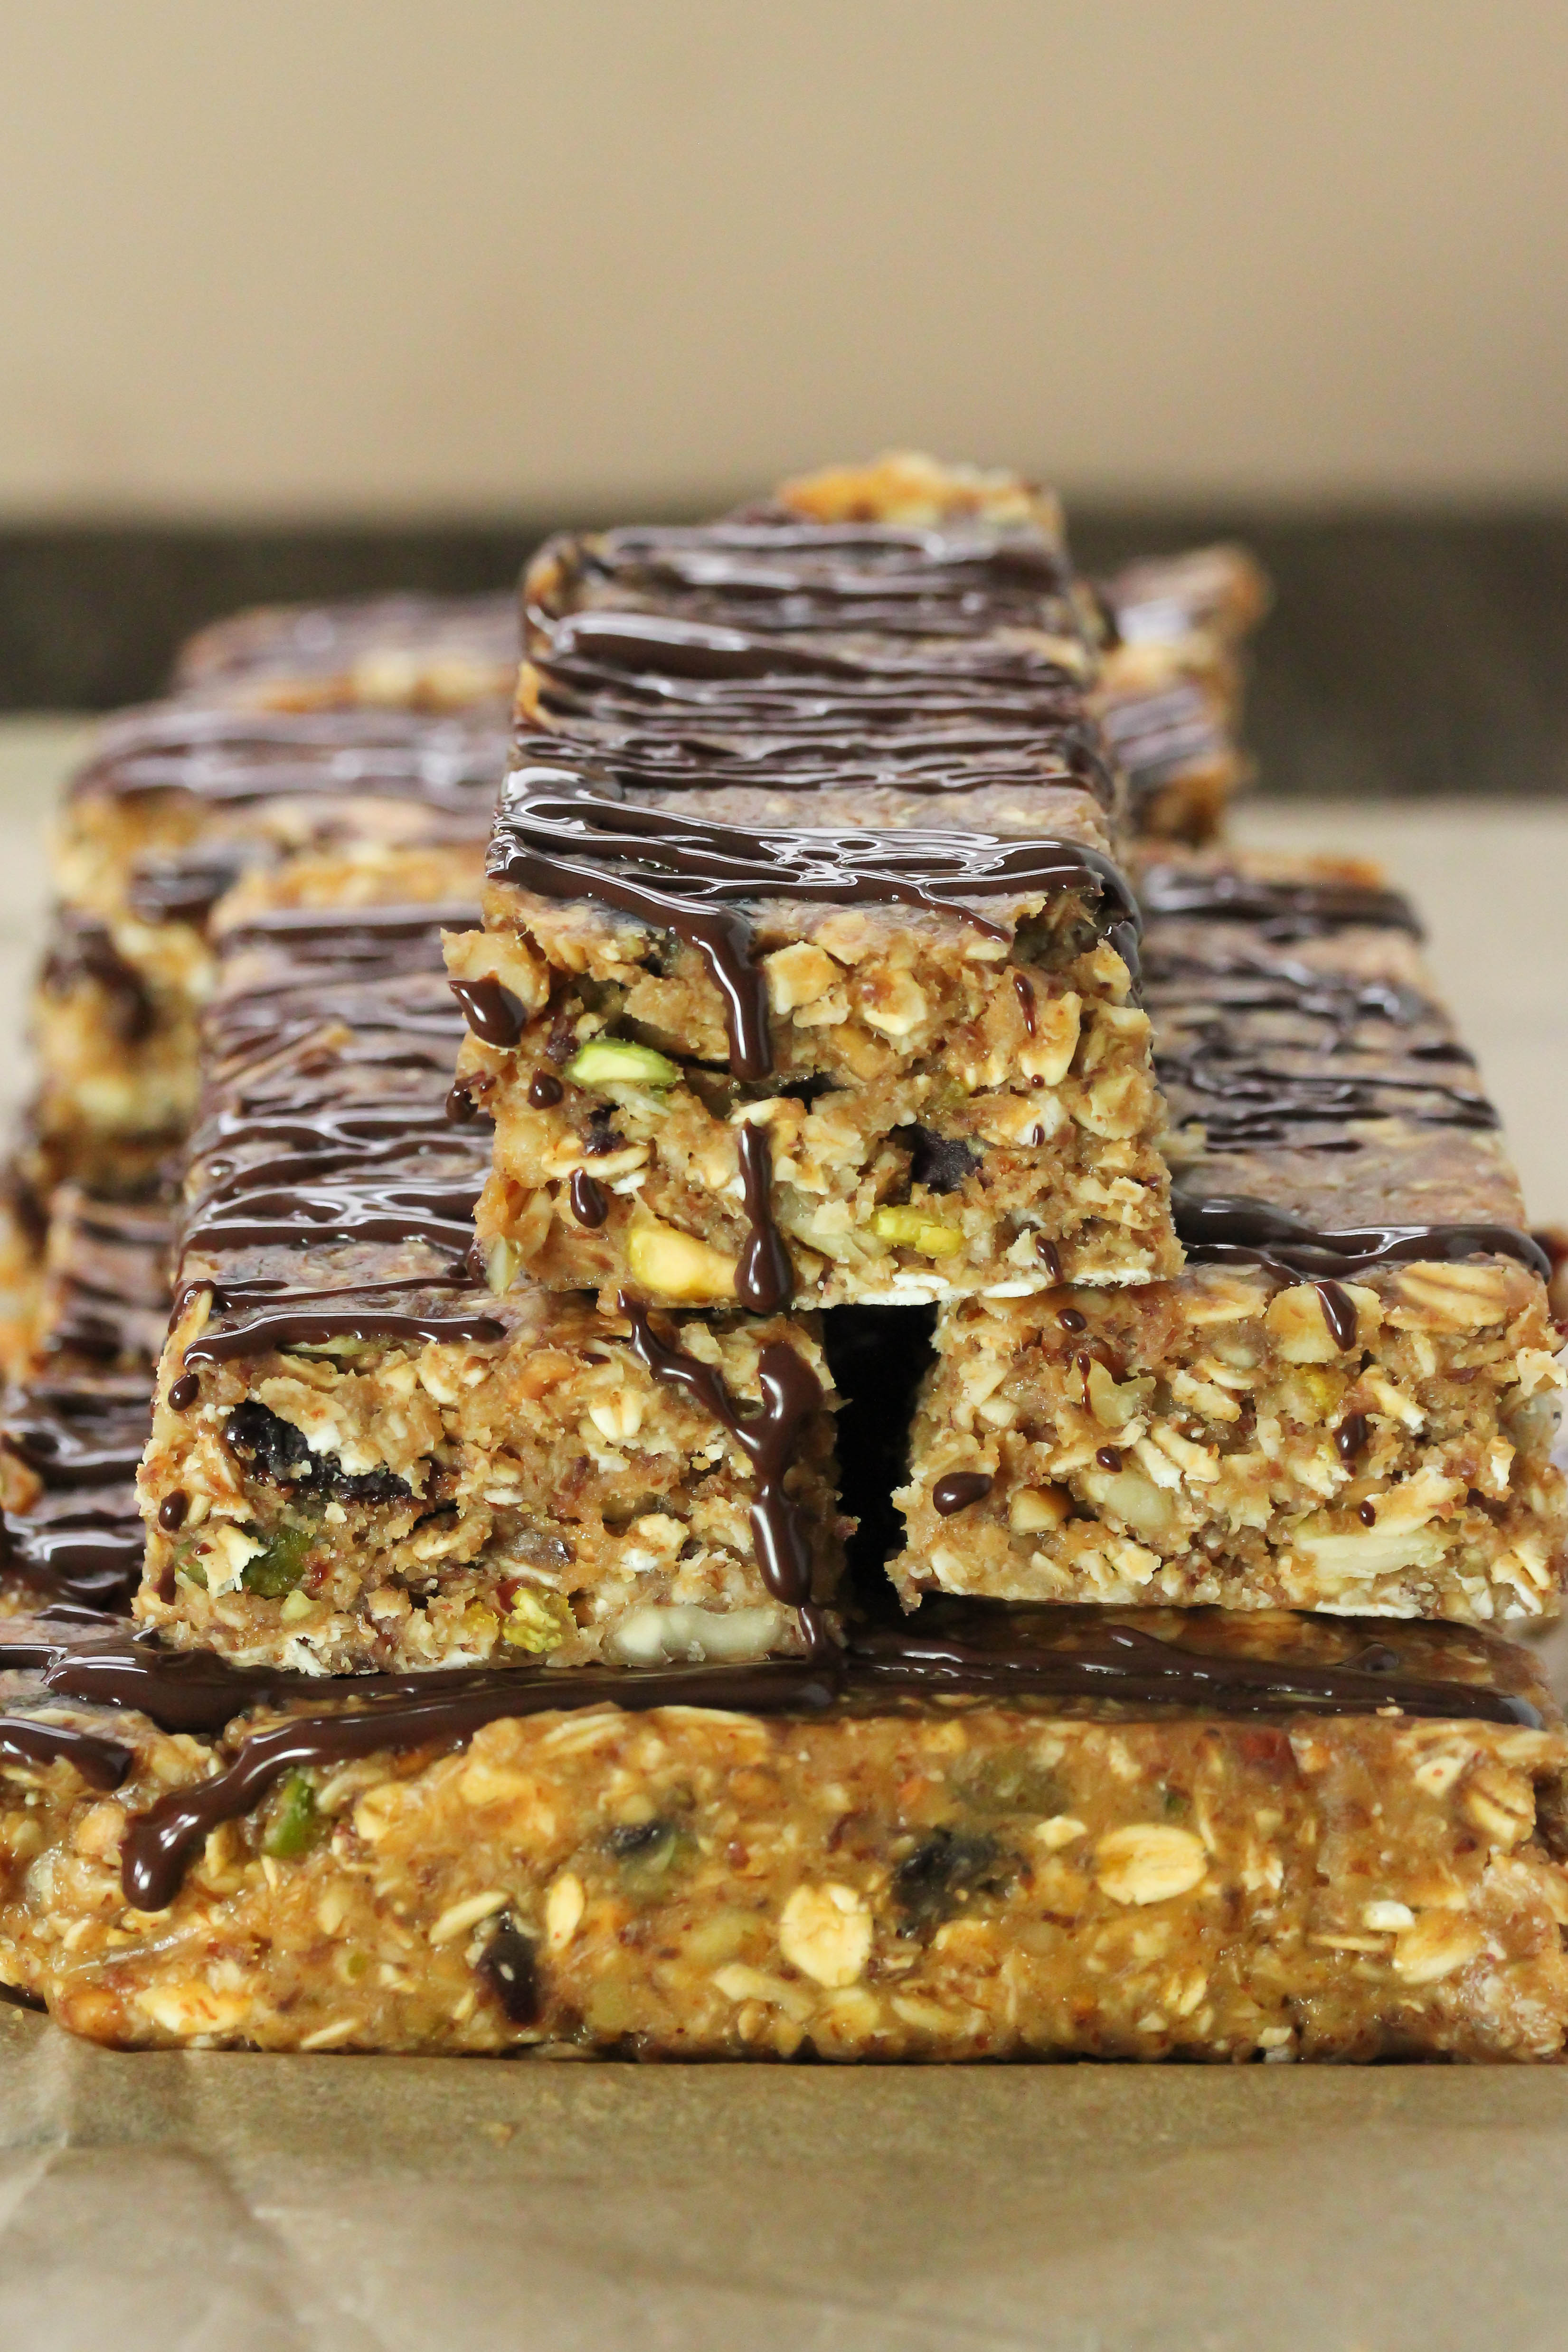 No bake breakfast bars gluten free vegan how awesome do this no bake breakfast bars look my husband loves these and tells me i need to keep making them 247 they are quick to make ccuart Image collections